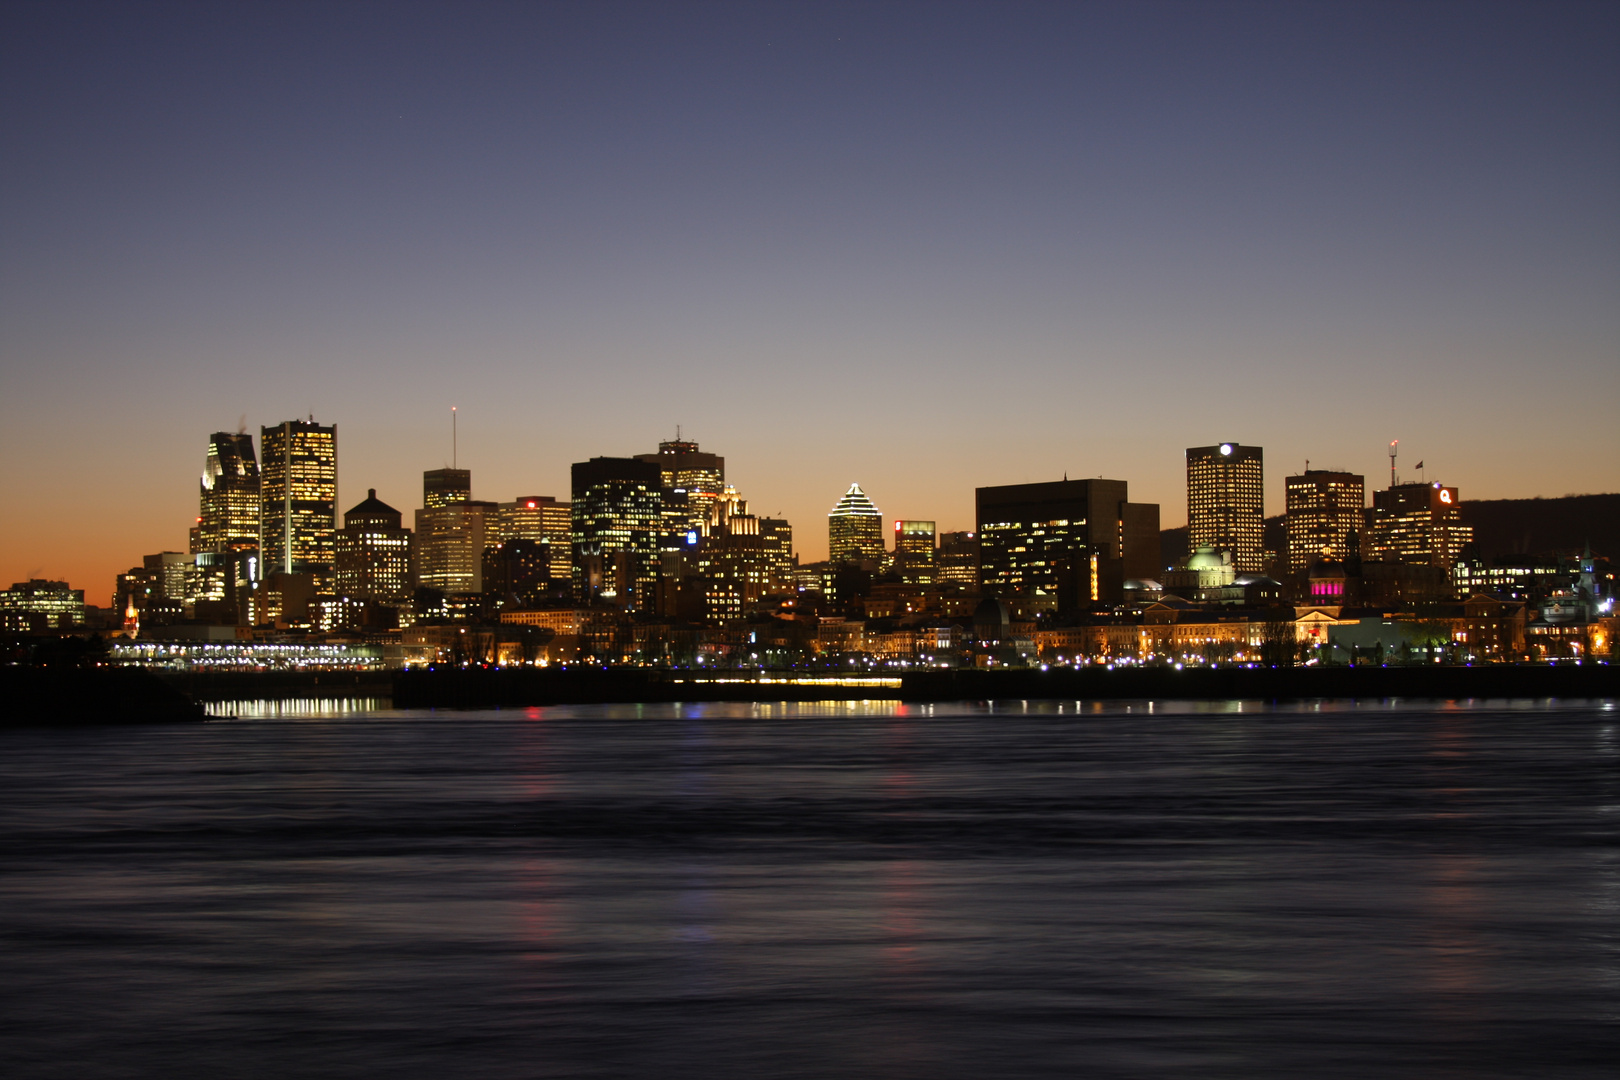 Montreal's skyline by night